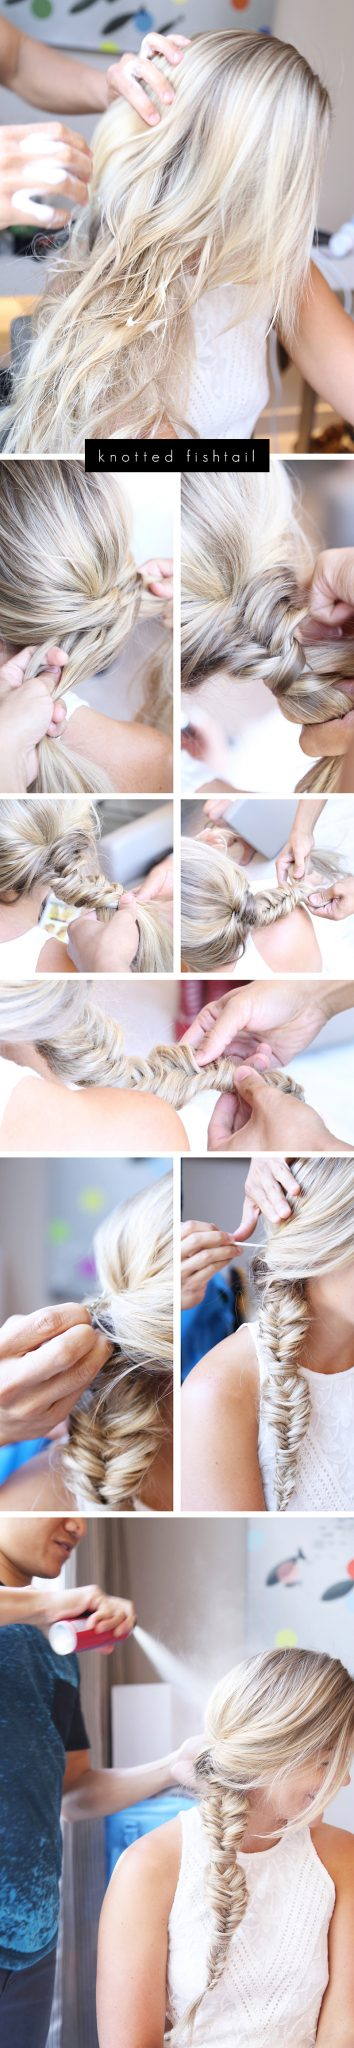 knotted-fishtail-braid-tutorial, summer-hair-style